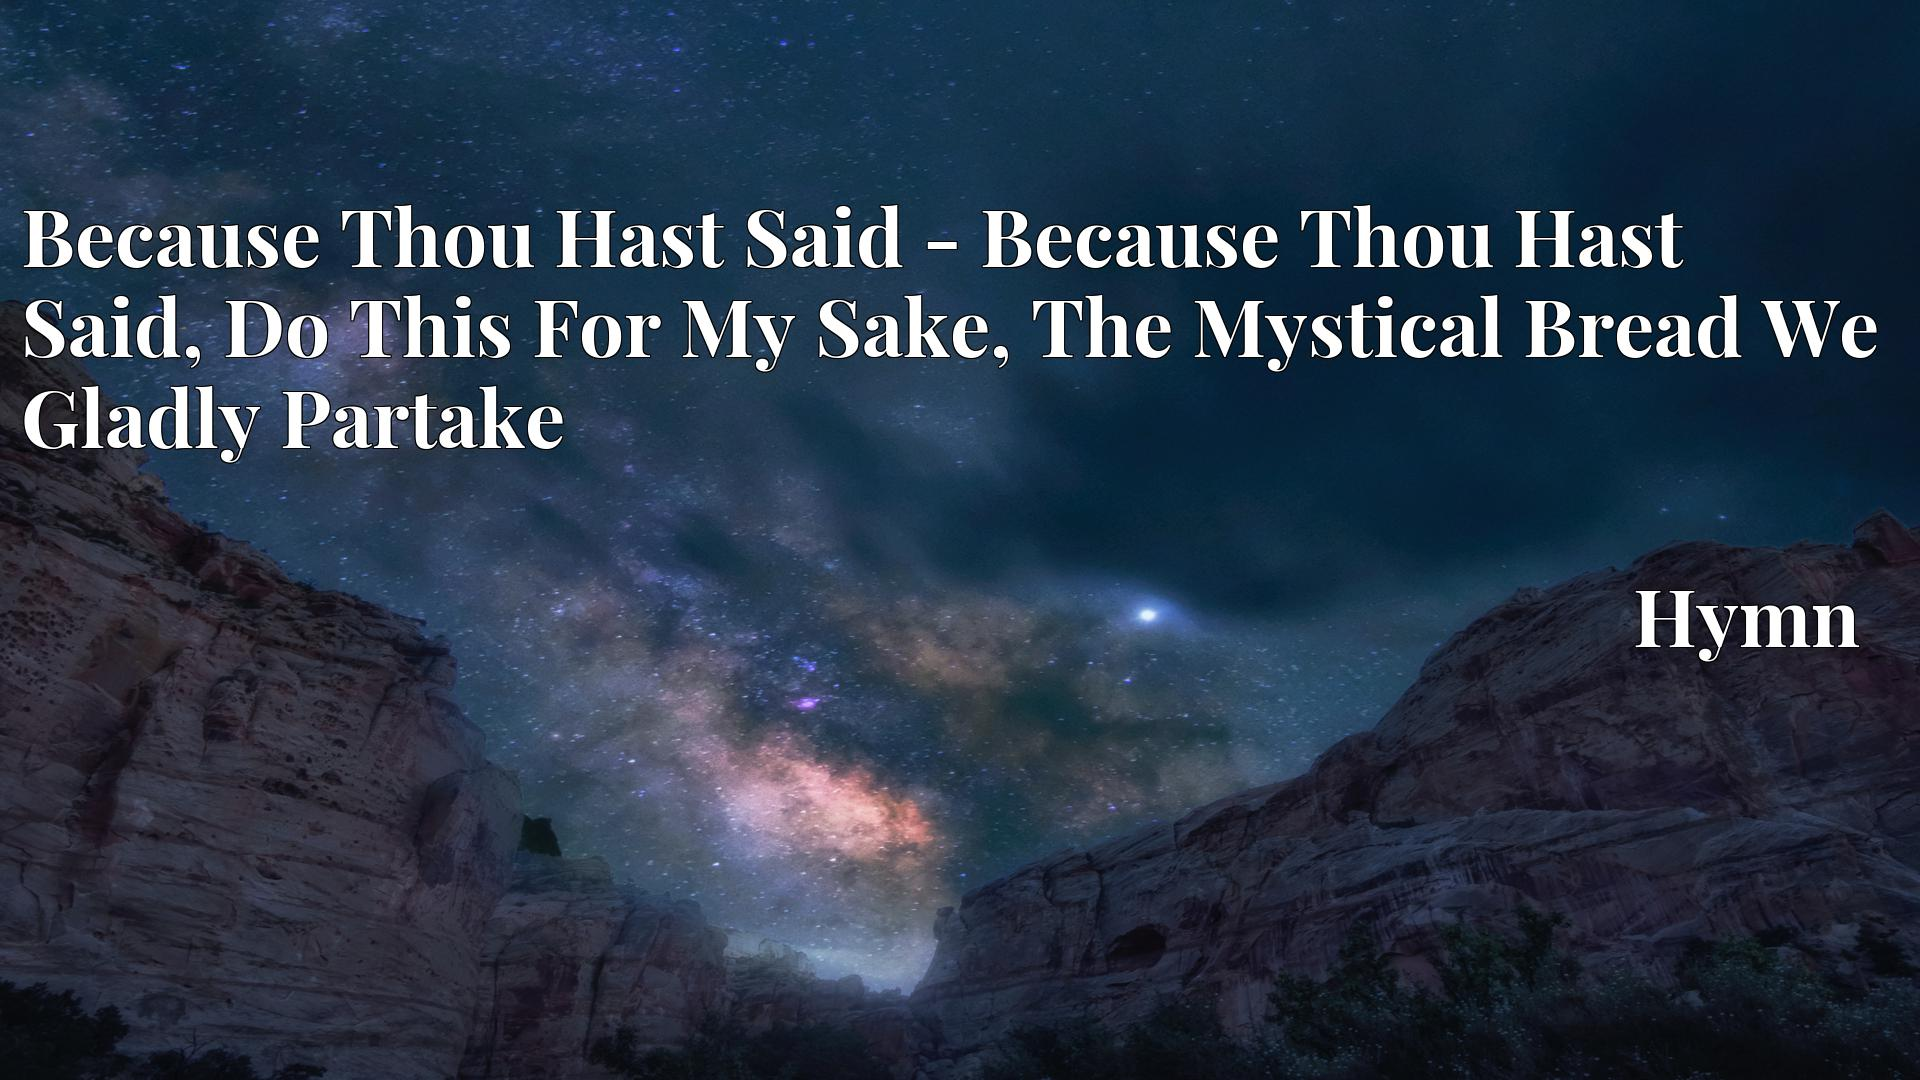 Because Thou Hast Said - Because Thou Hast Said, Do This For My Sake, The Mystical Bread We Gladly Partake - Hymn